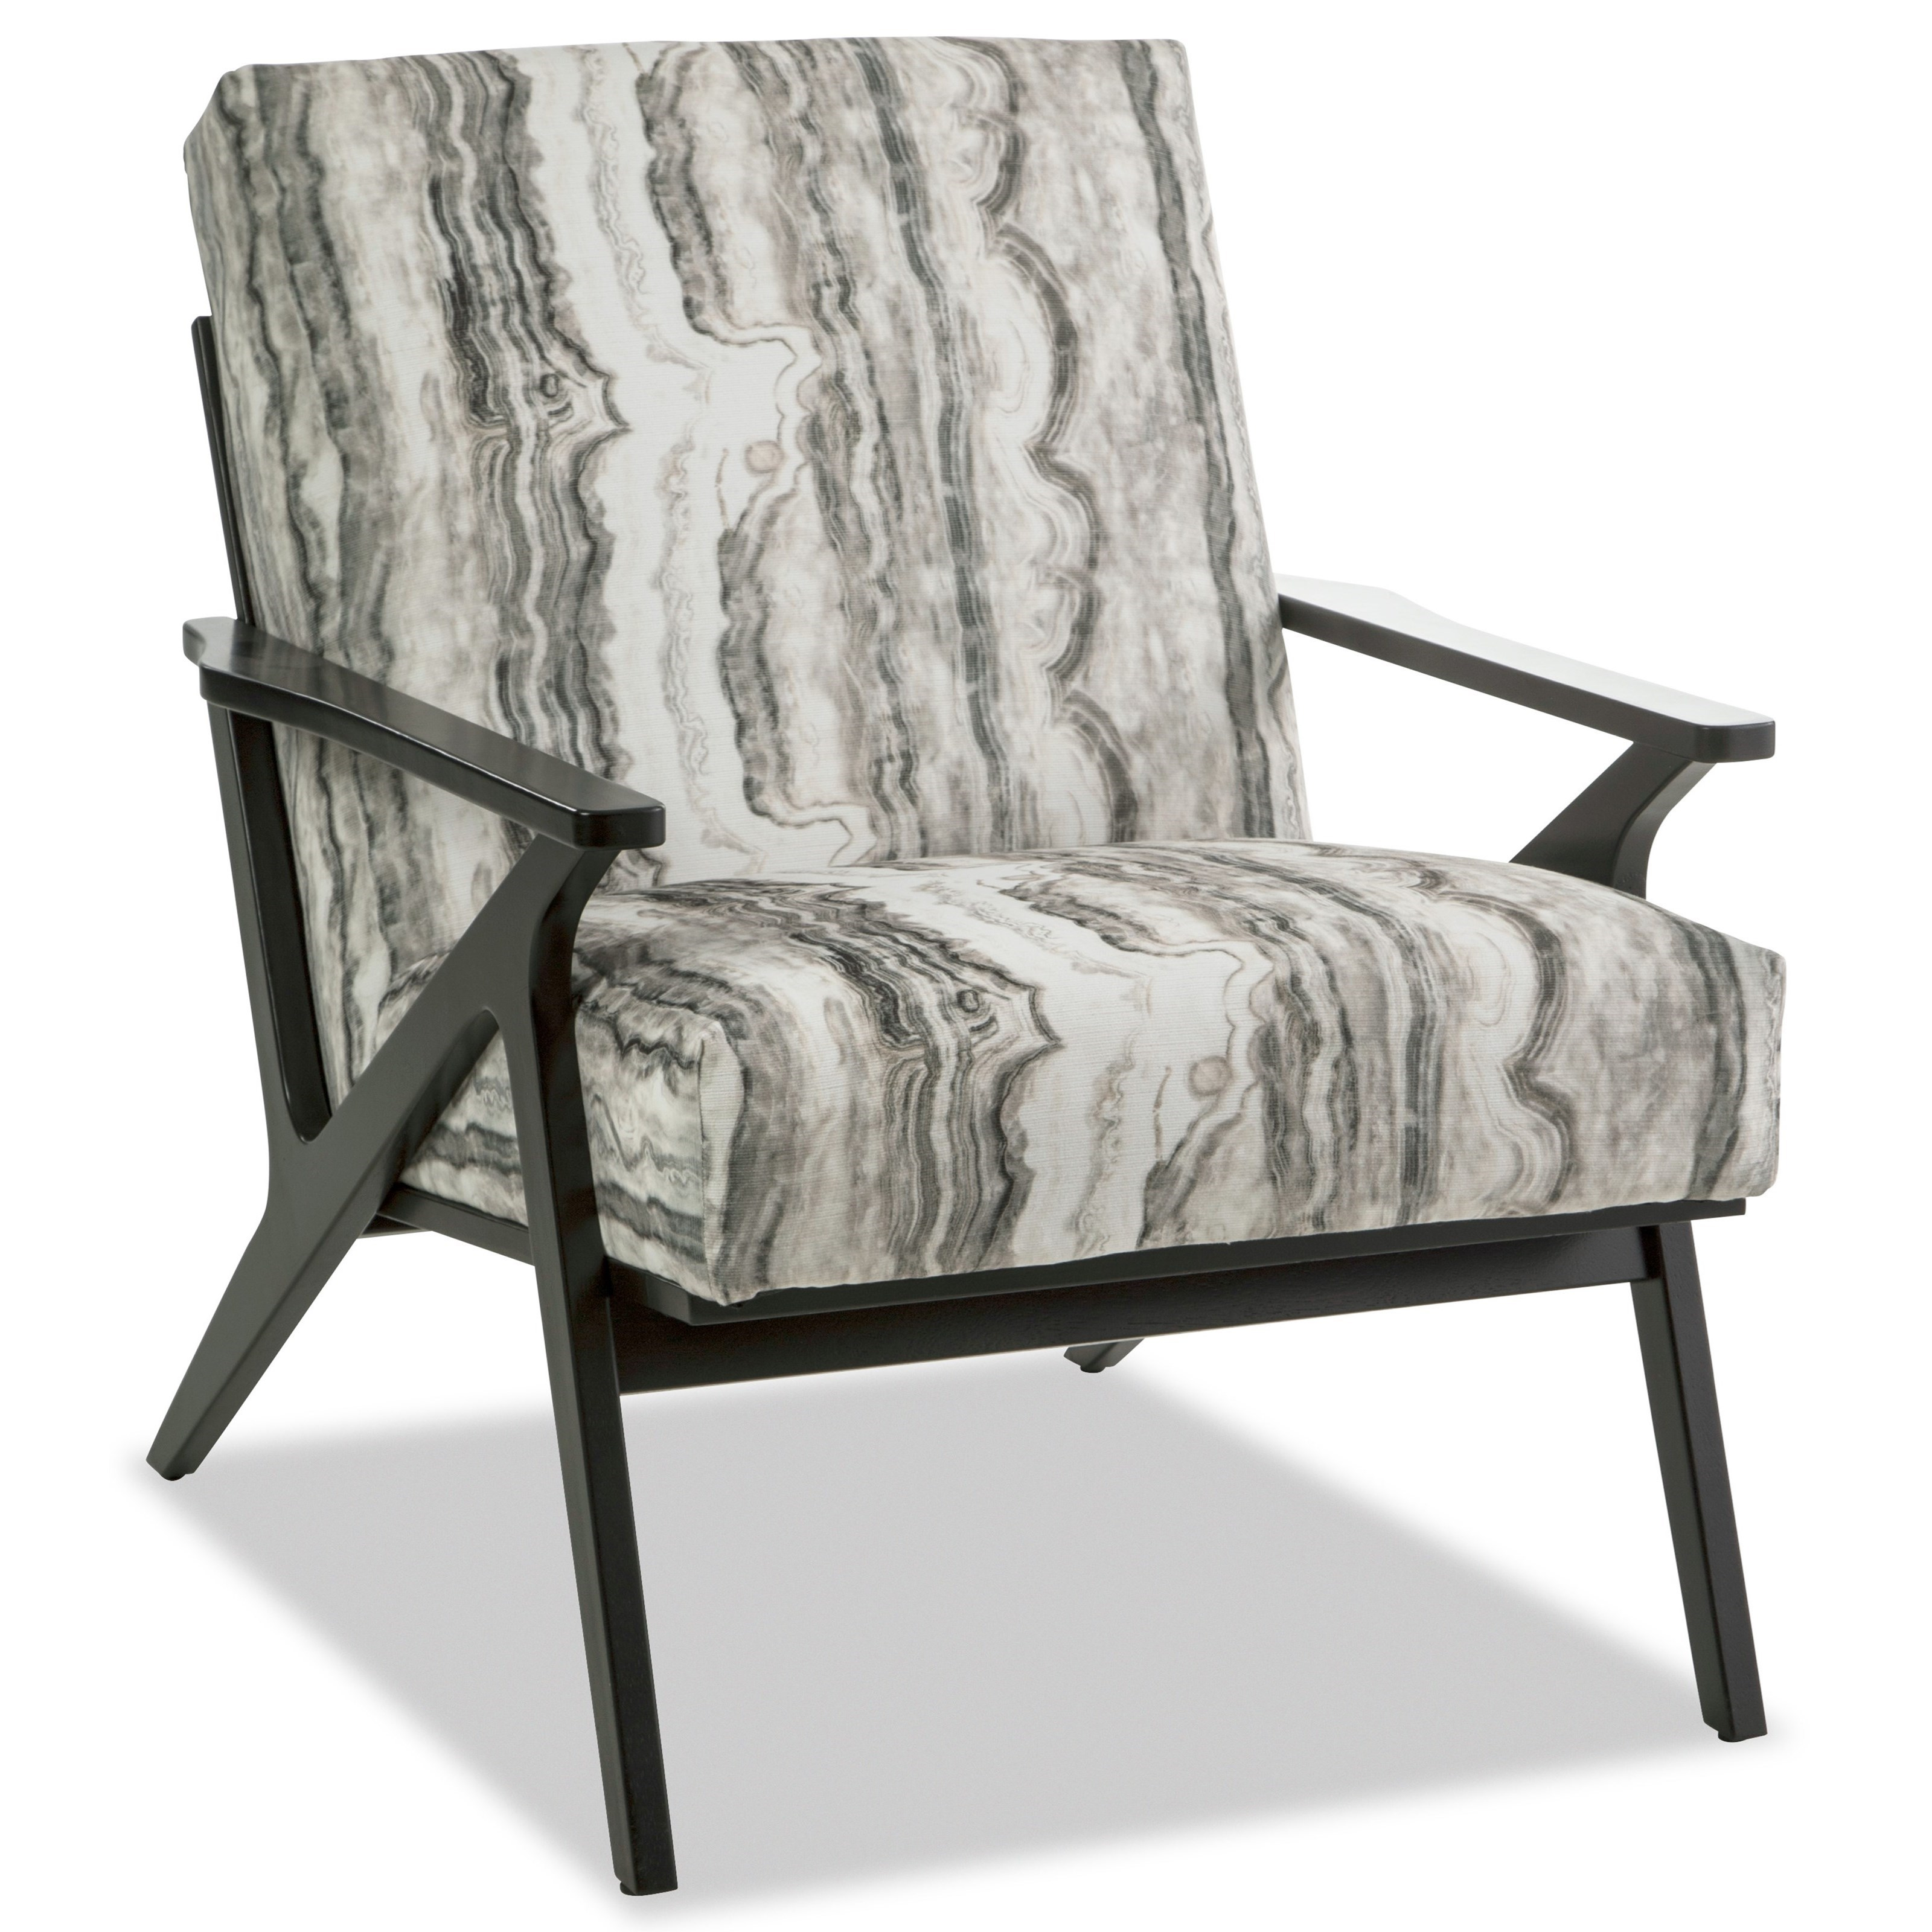 085910 Chair by Craftmaster at Story & Lee Furniture